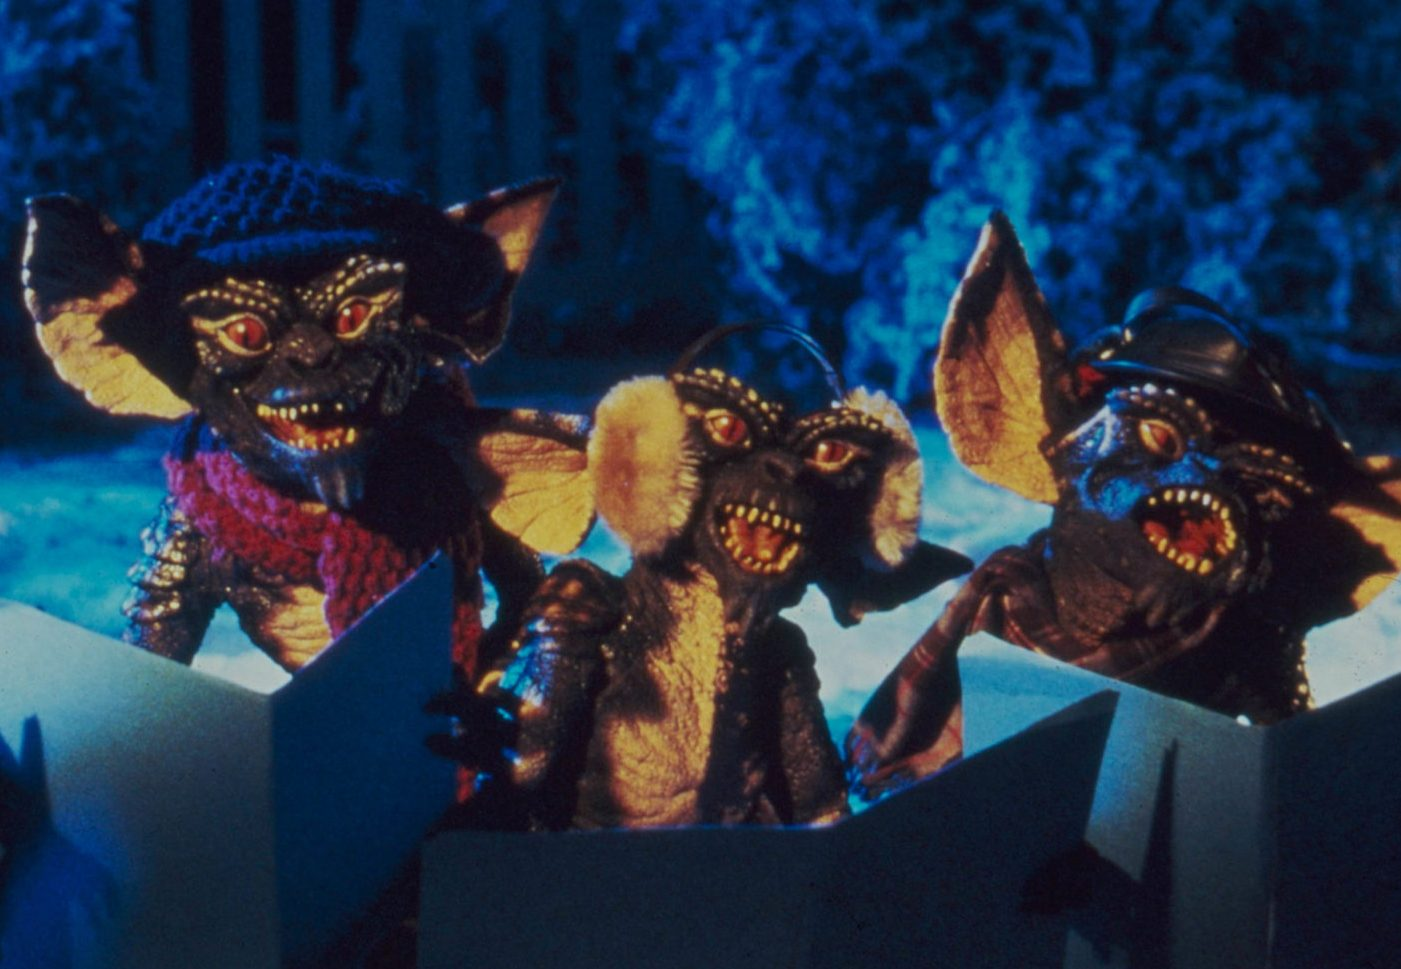 gremlins 1984 photo 1920x1080 8 hero 1920x1080 1 e1617203112957 20 Horror Movies That Defined The 1980s